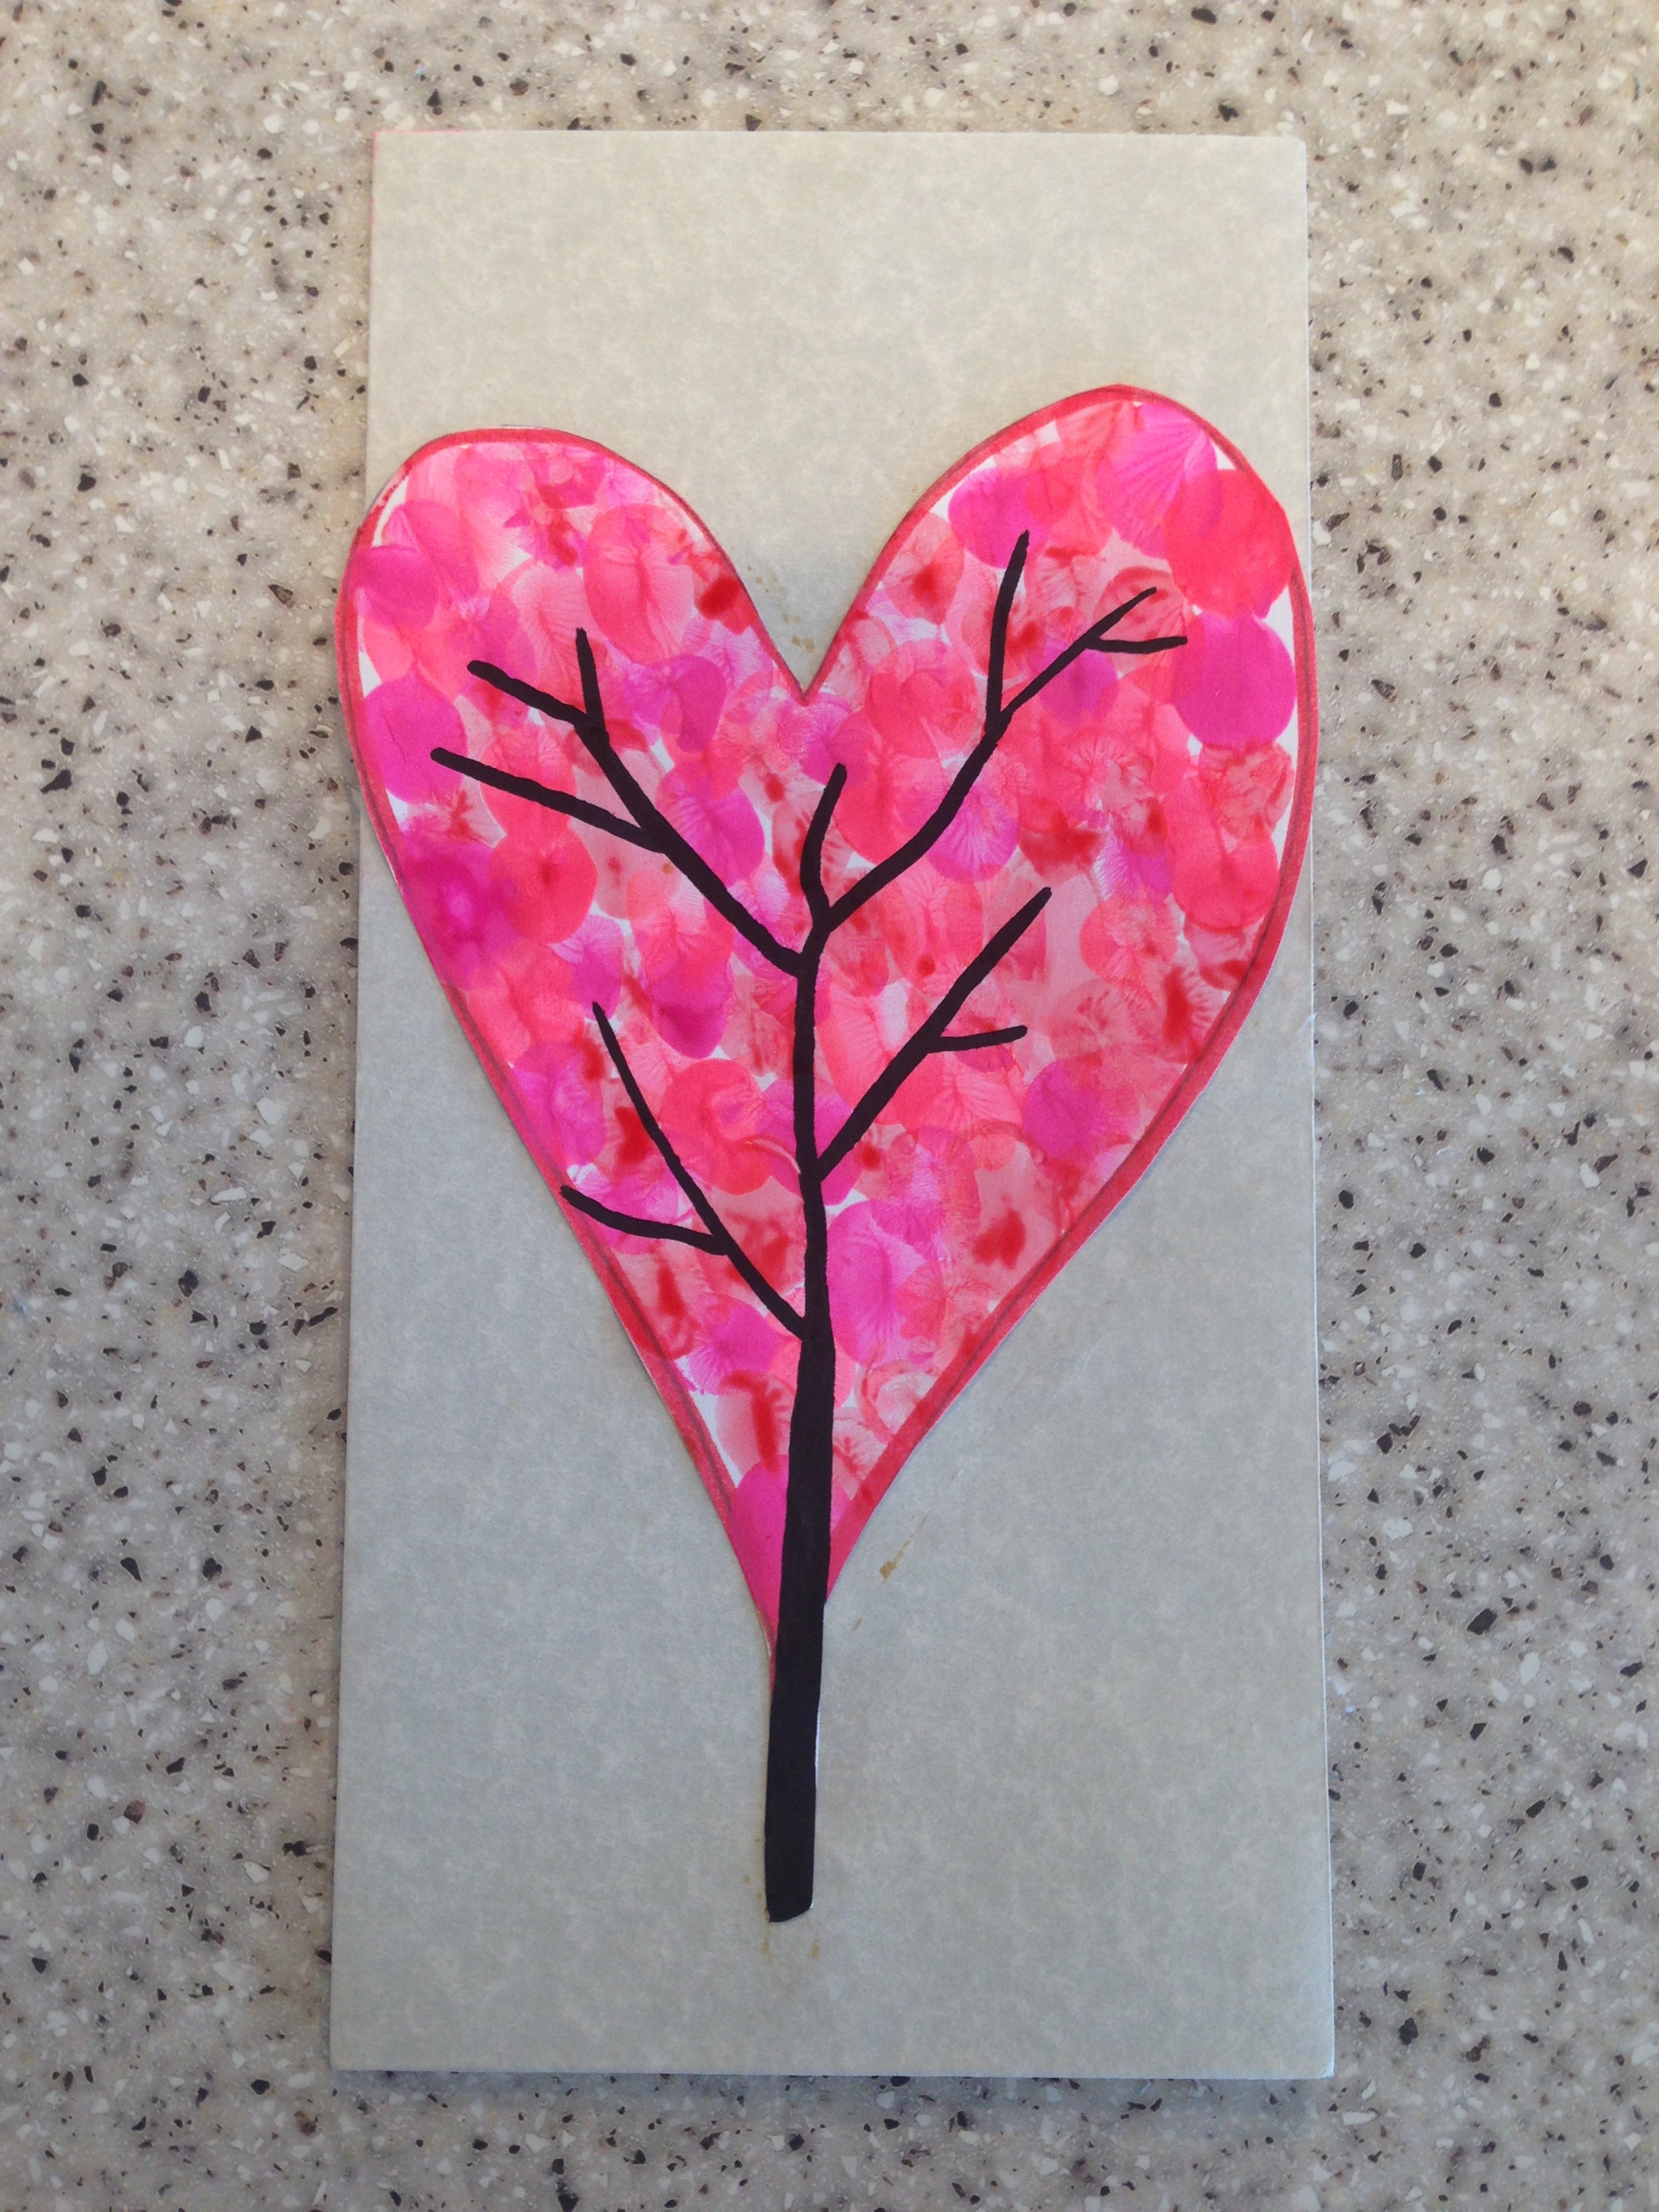 Fingerprint heart - Instructions1. Cut out a heart shape from a piece of card2. Using pink and red colored paint, let your little one use their finger prints to fill in the entire heart shape3. Draw a tree shape as shown in the photo **These are great to use as the front cover of a homemade card